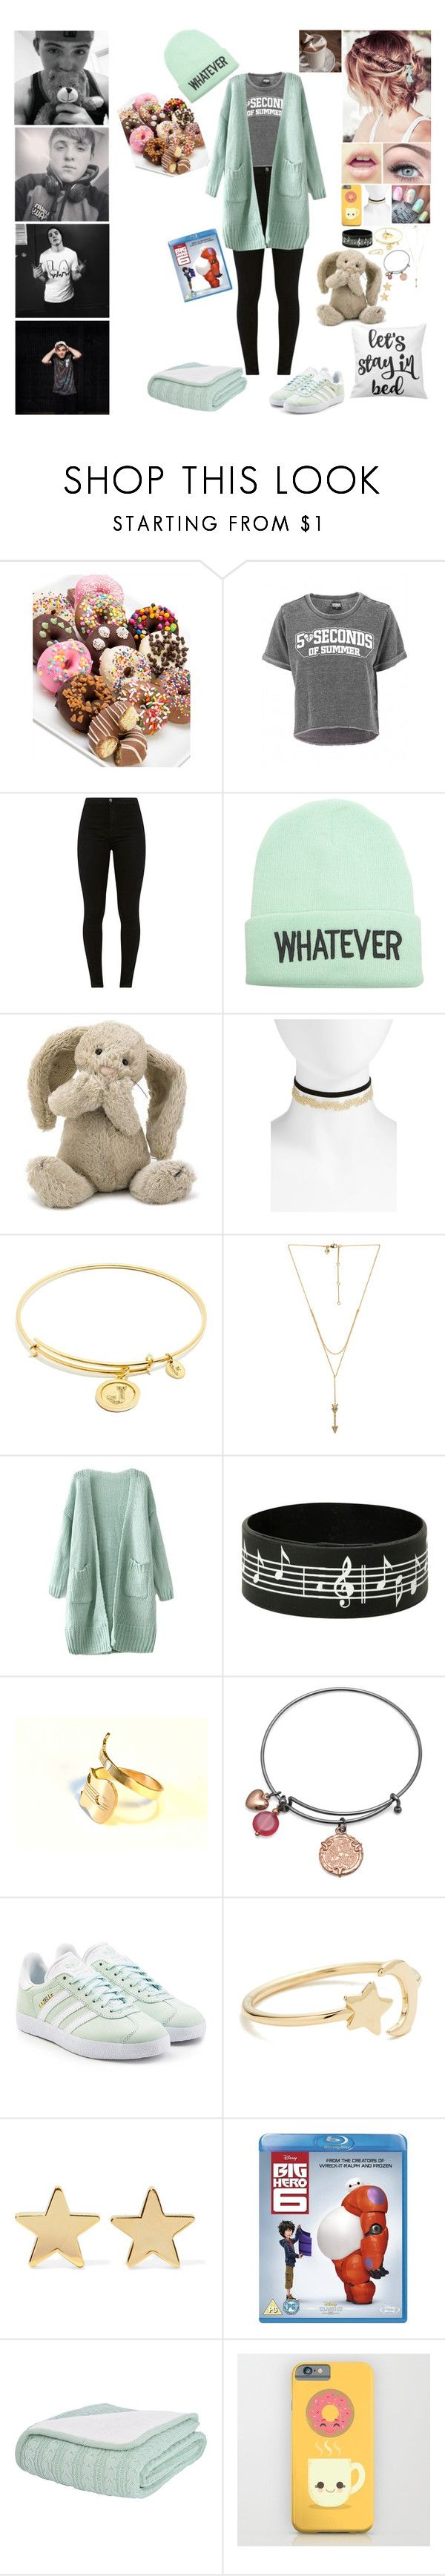 """Jamie's Lazy Afternoon"" by alexishambleton on Polyvore featuring mode, Golden Edibles, Wet Seal, Jellycat, BP., Chrysalis, Rebecca Minkoff, BillyTheTree, adidas Originals et Ariel Gordon"